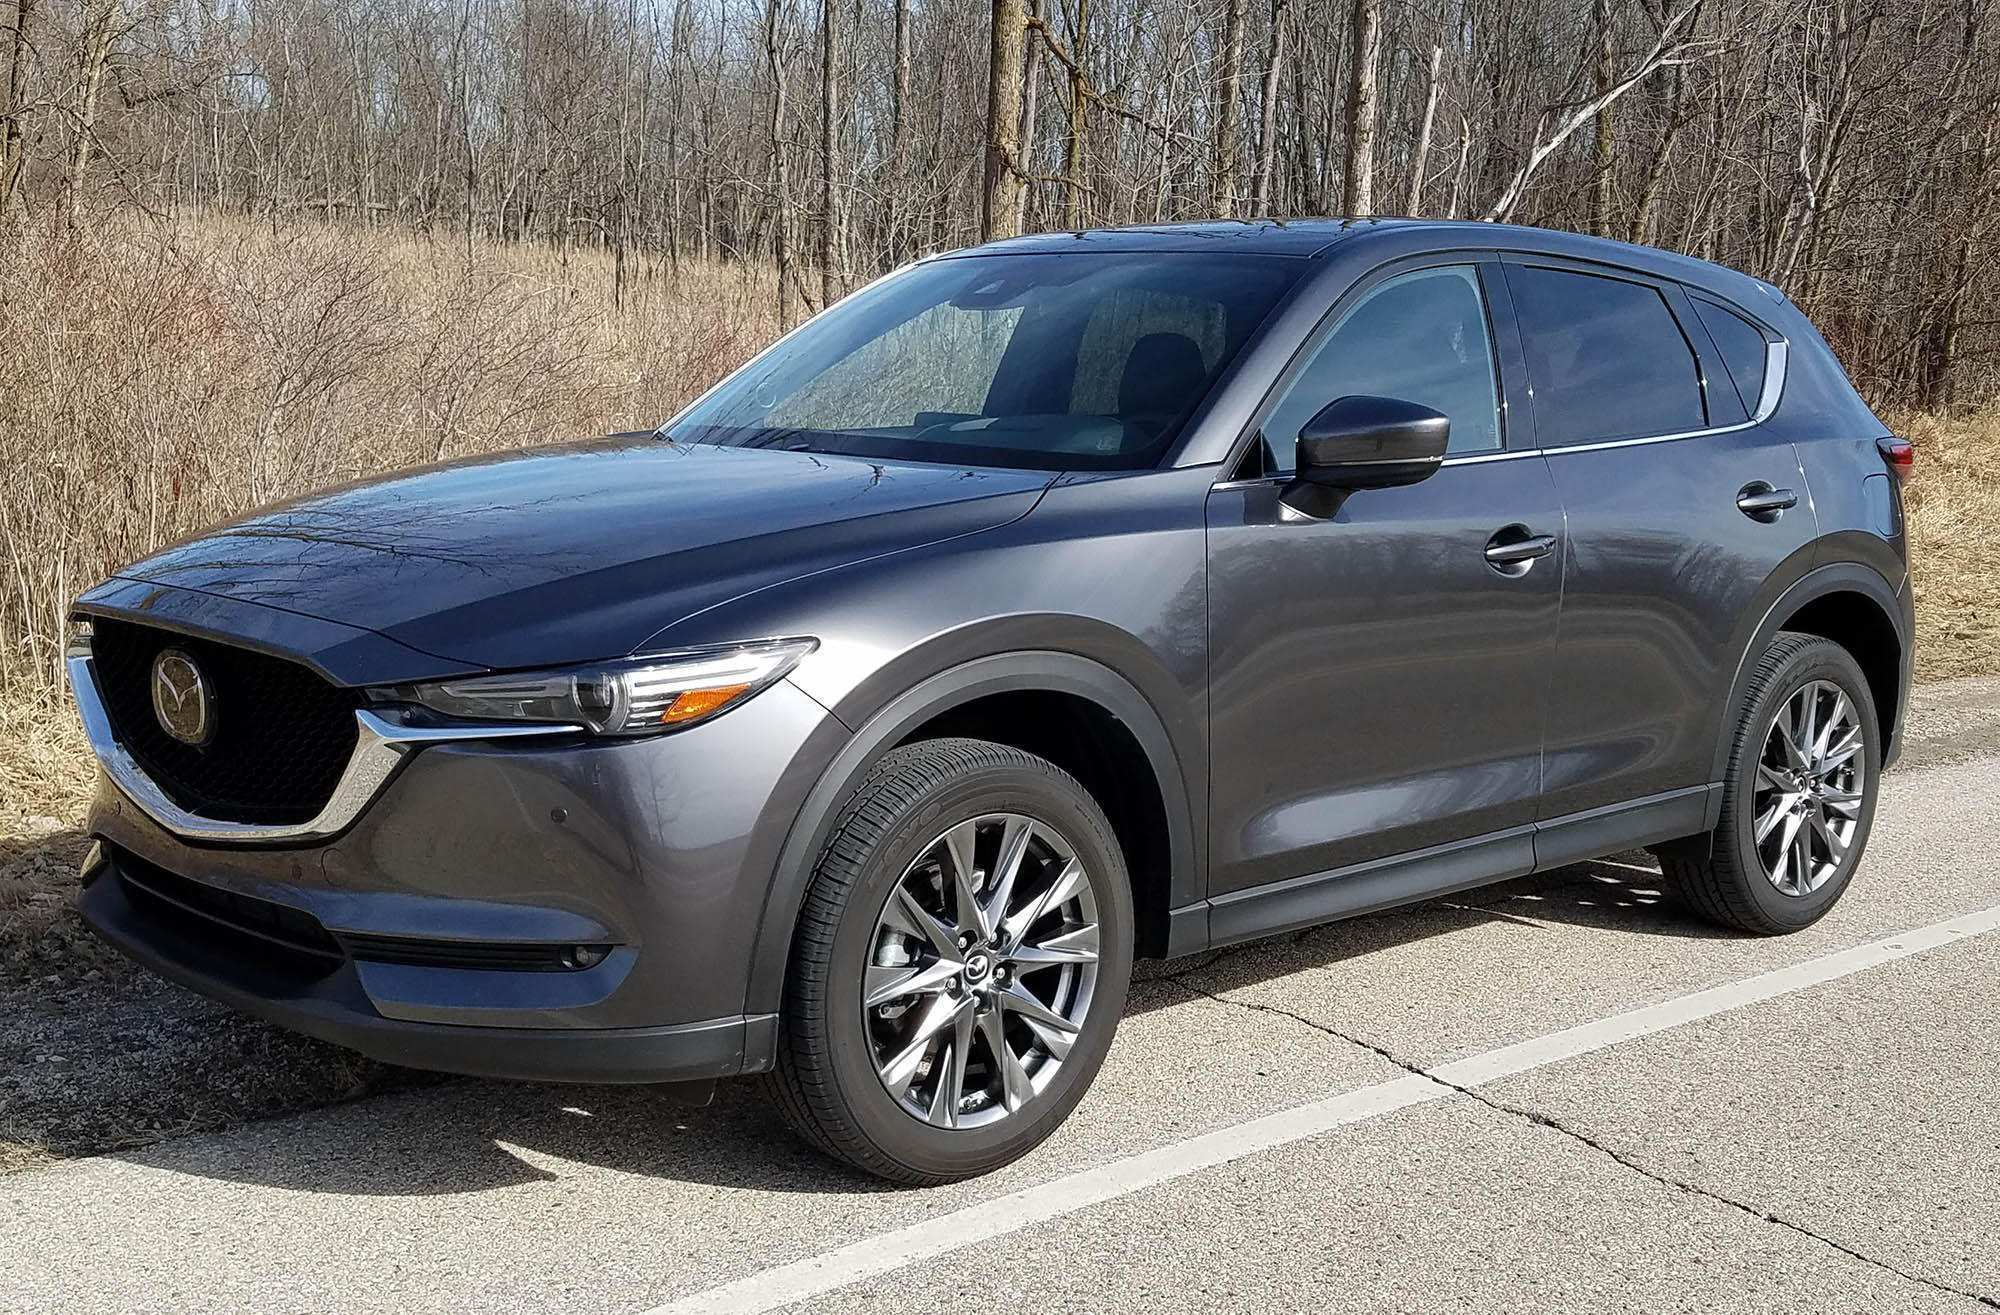 68 The Best 2019 Mazda Cx 5 Wallpaper